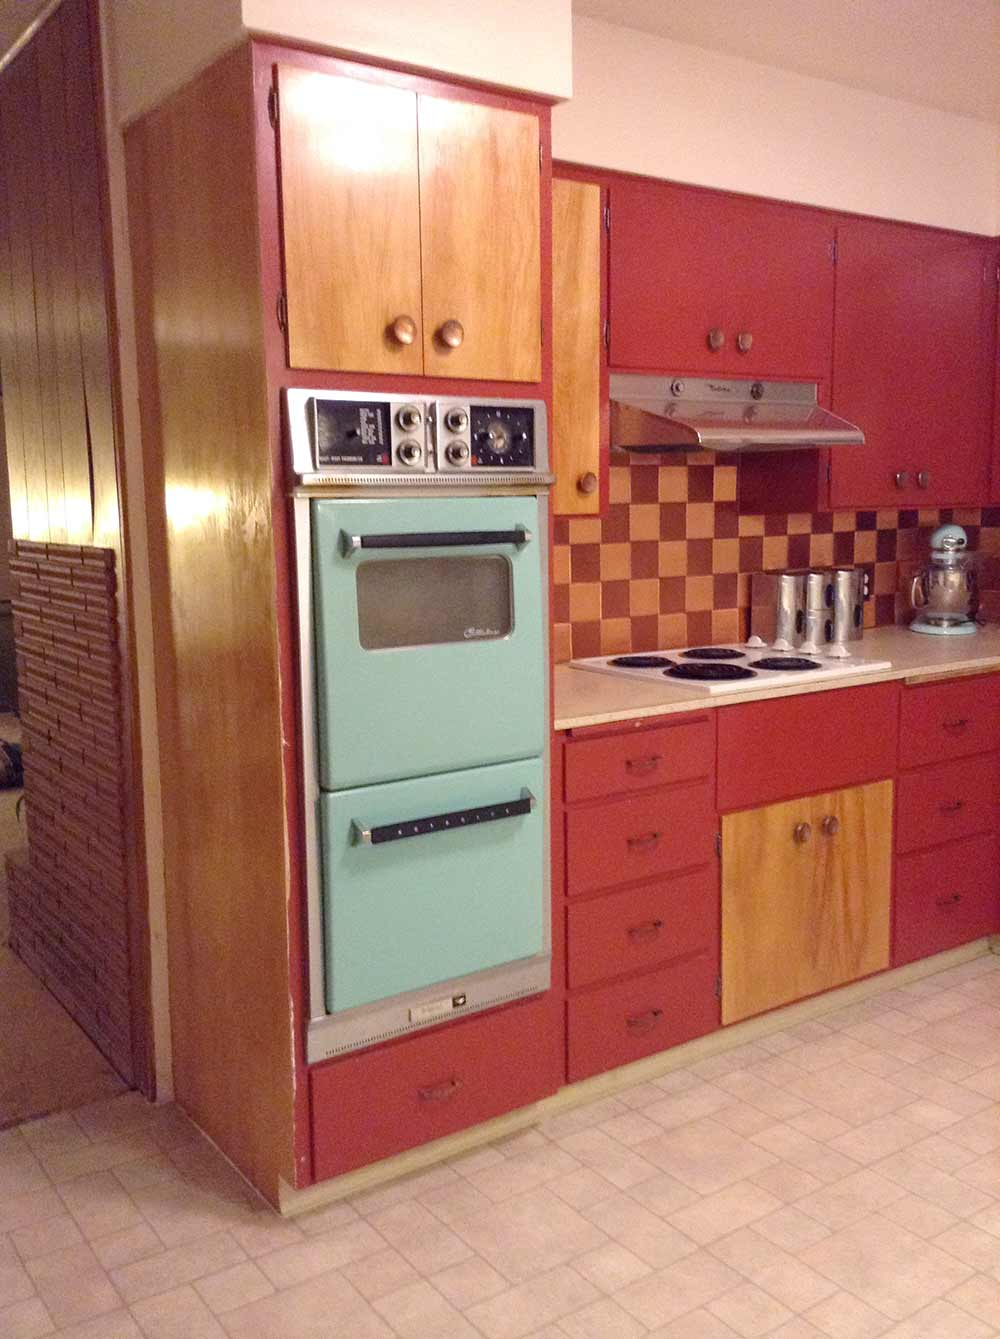 Flooring and countertops for shannan 39 s 1950s kitchen retro renovation - Retro flooring kitchen ...